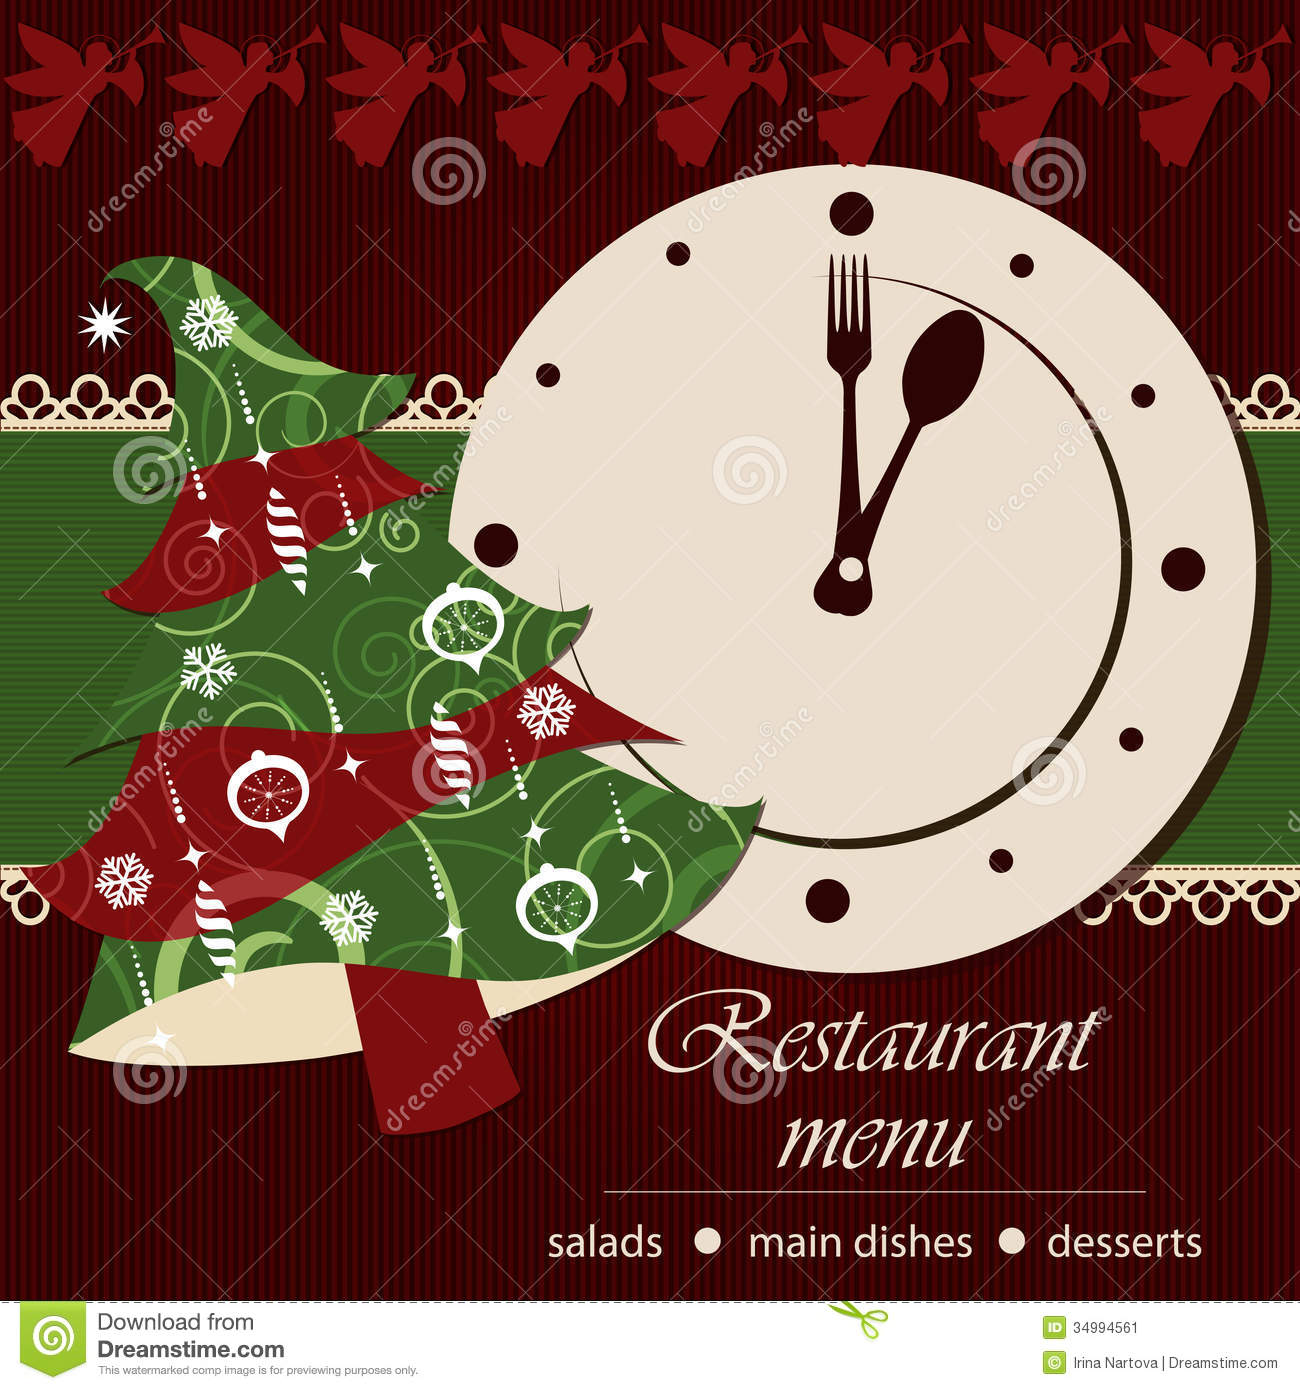 Template Of A Christmas Menu Stock Vector Illustration Of Lace